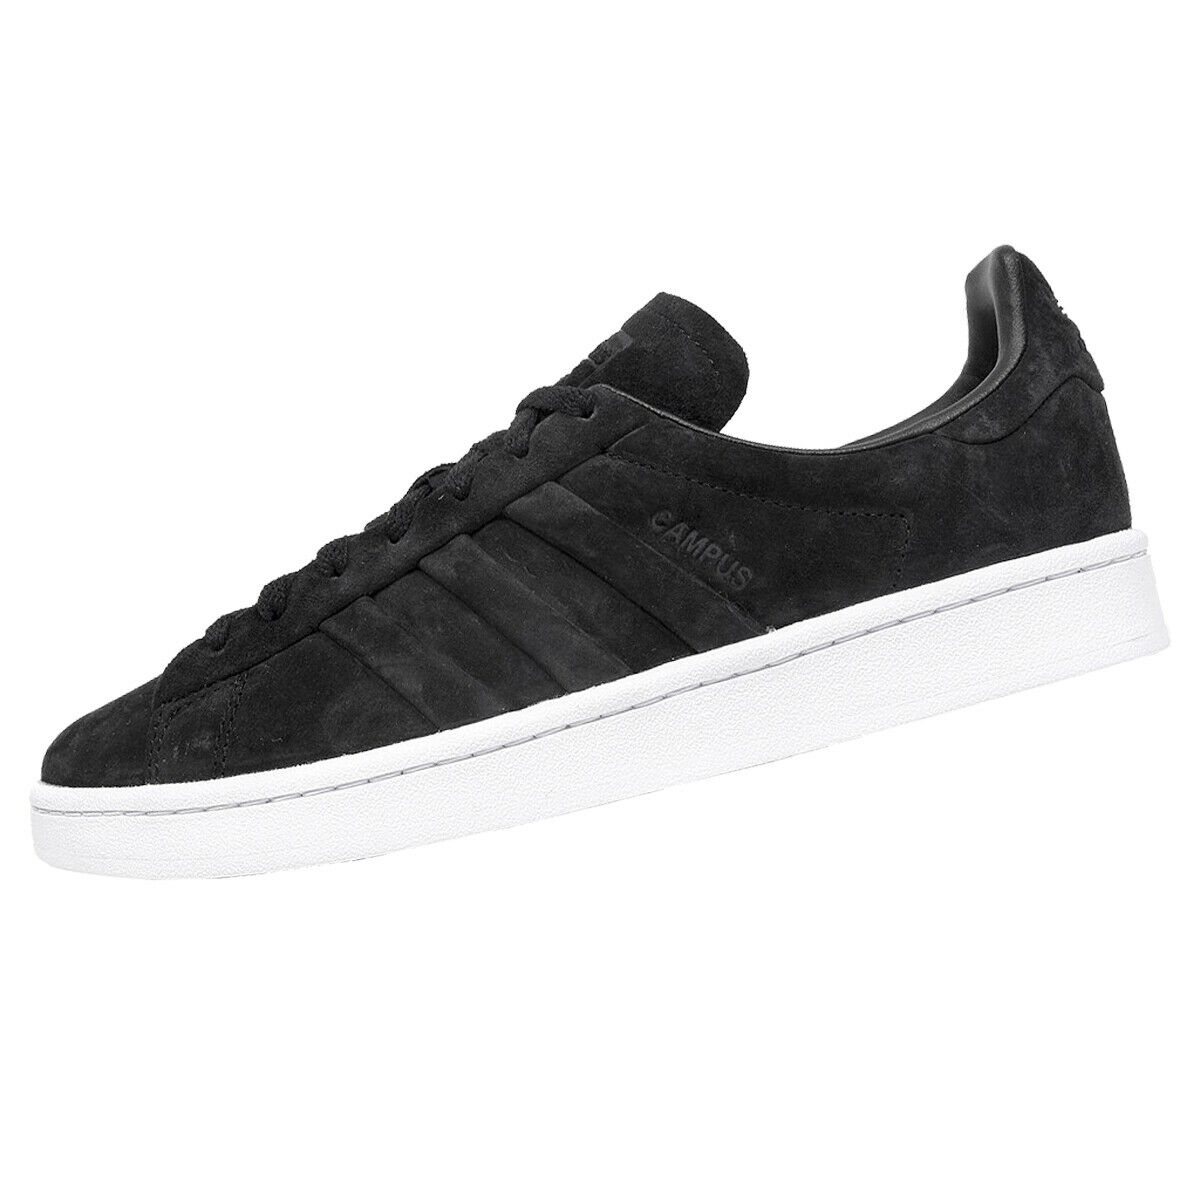 Mens Adidas Originals Campus Trainers Stitch And Turn Casual Leather zapatos Talla